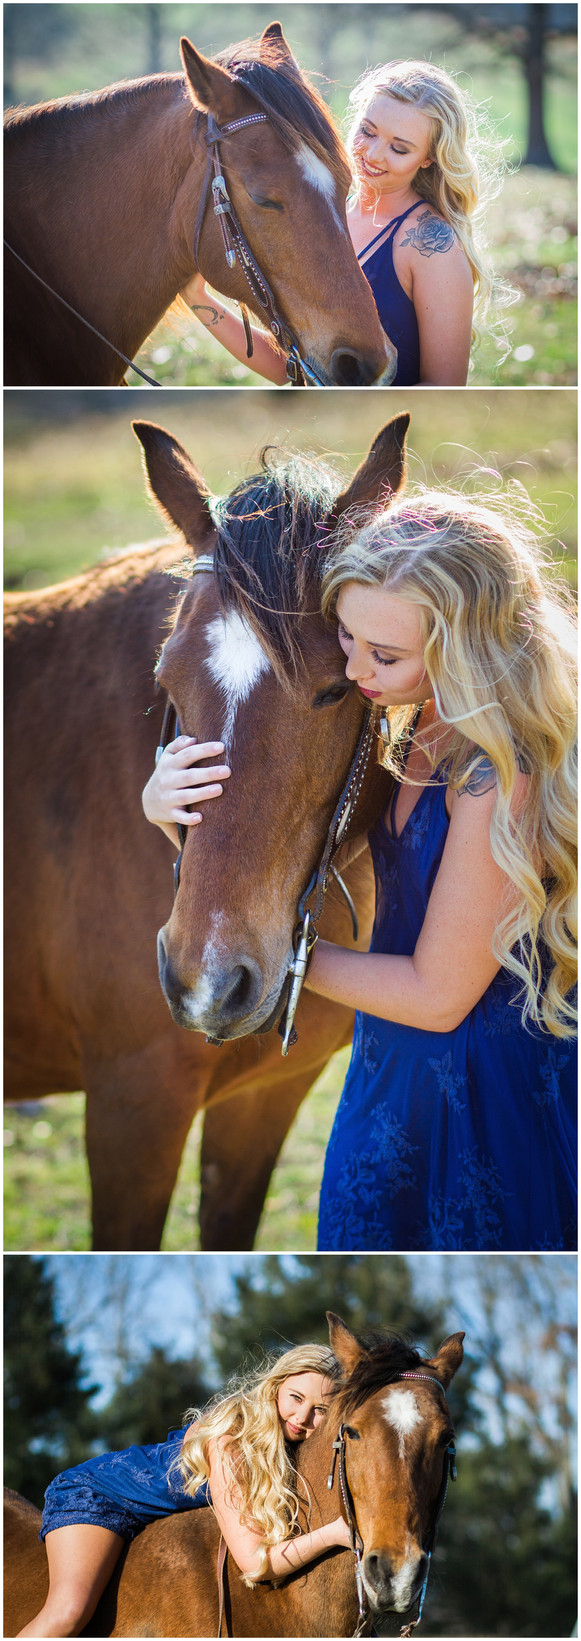 Stephanie McBee Photography - Harrison, Ar Photographer - Megan Fitch Bergman High School